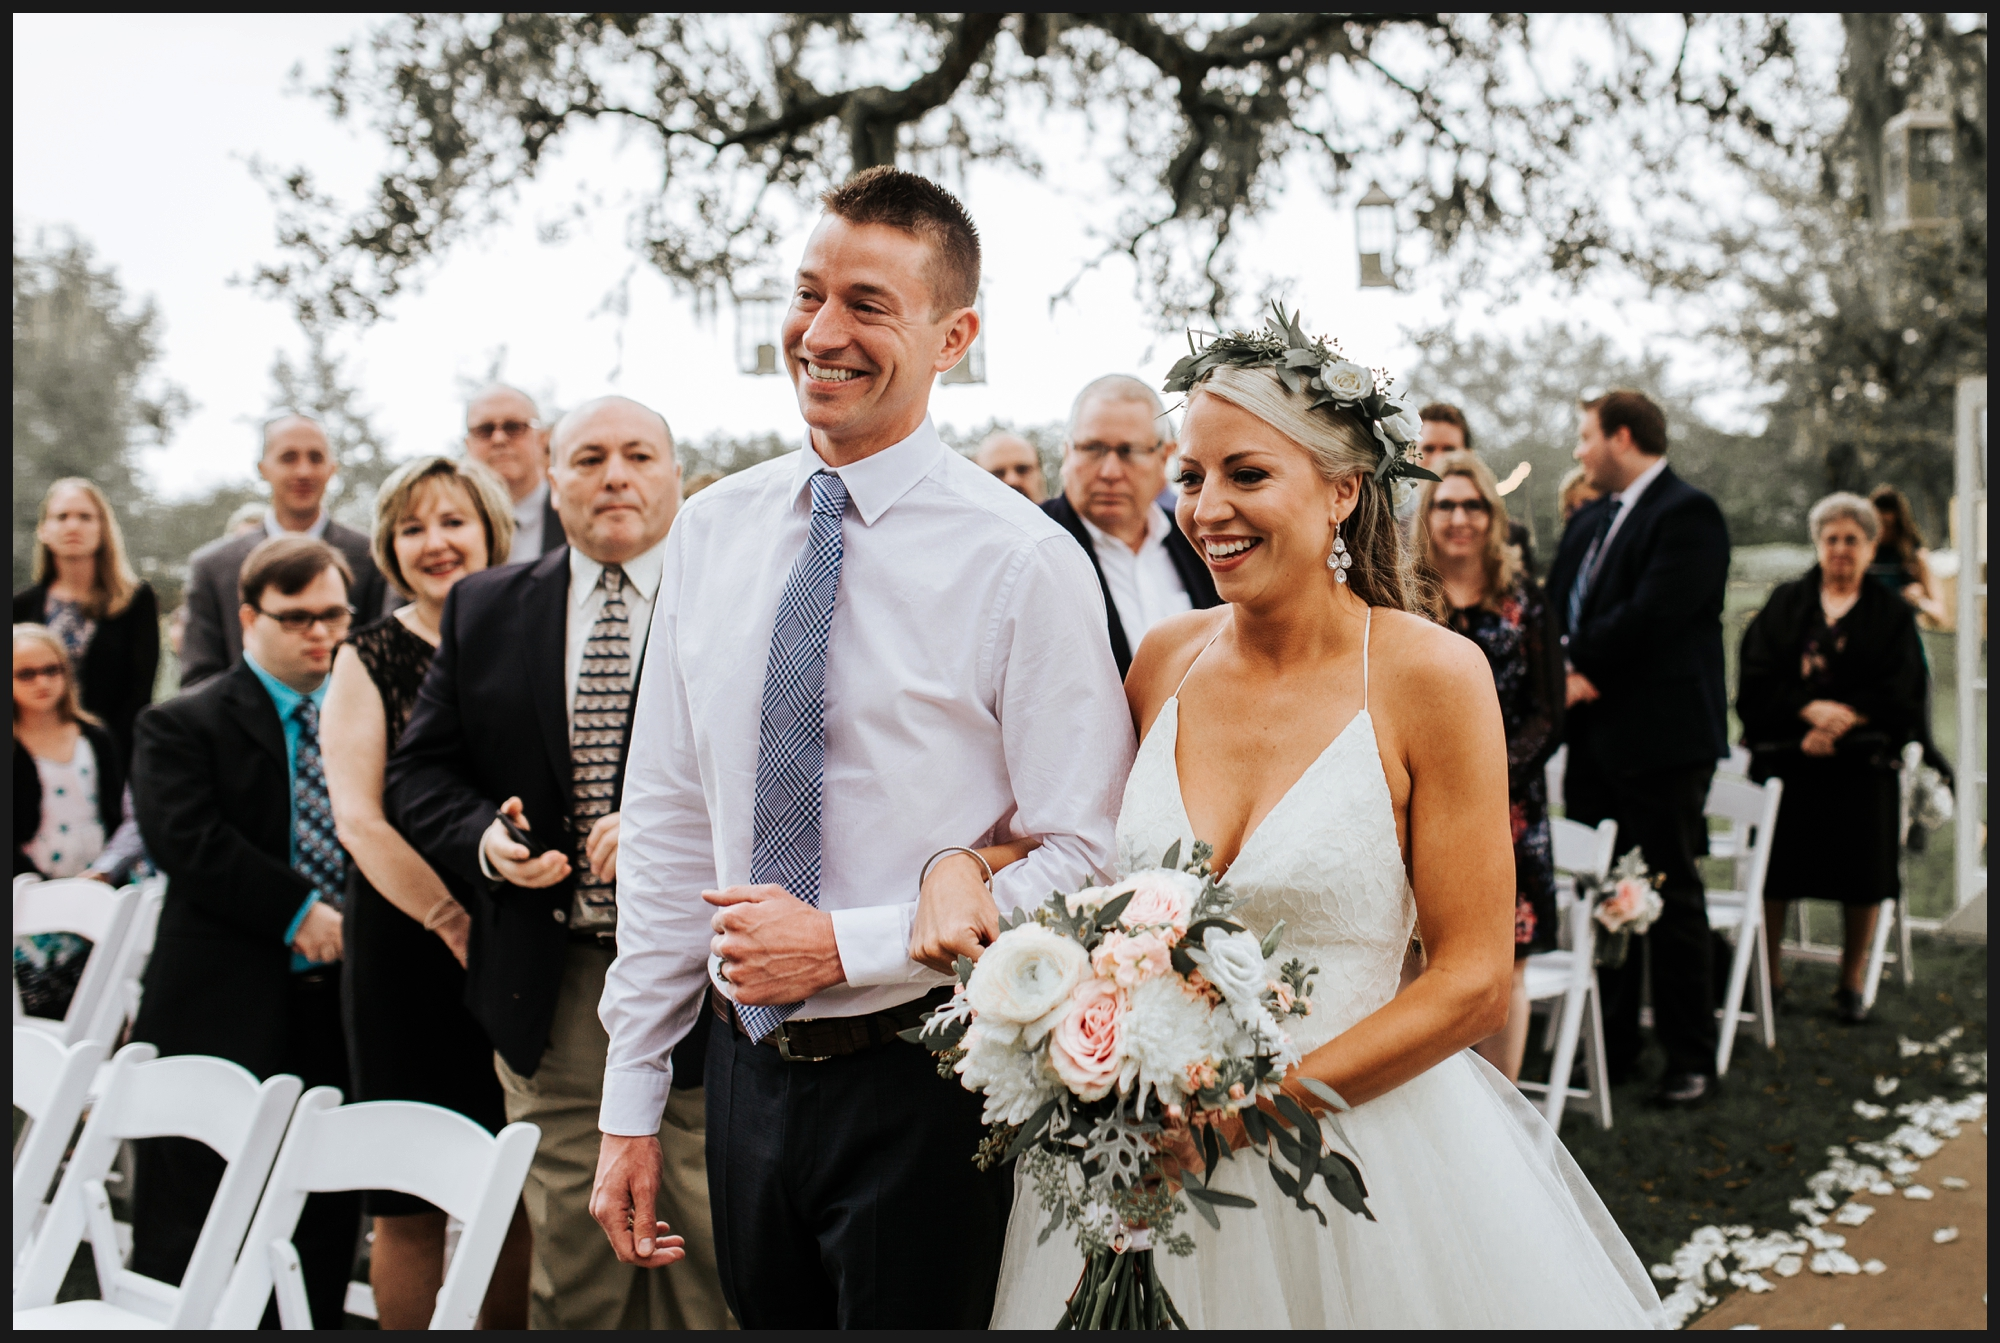 OrlandoWeddingPhotographerMattSierra_0077.jpg